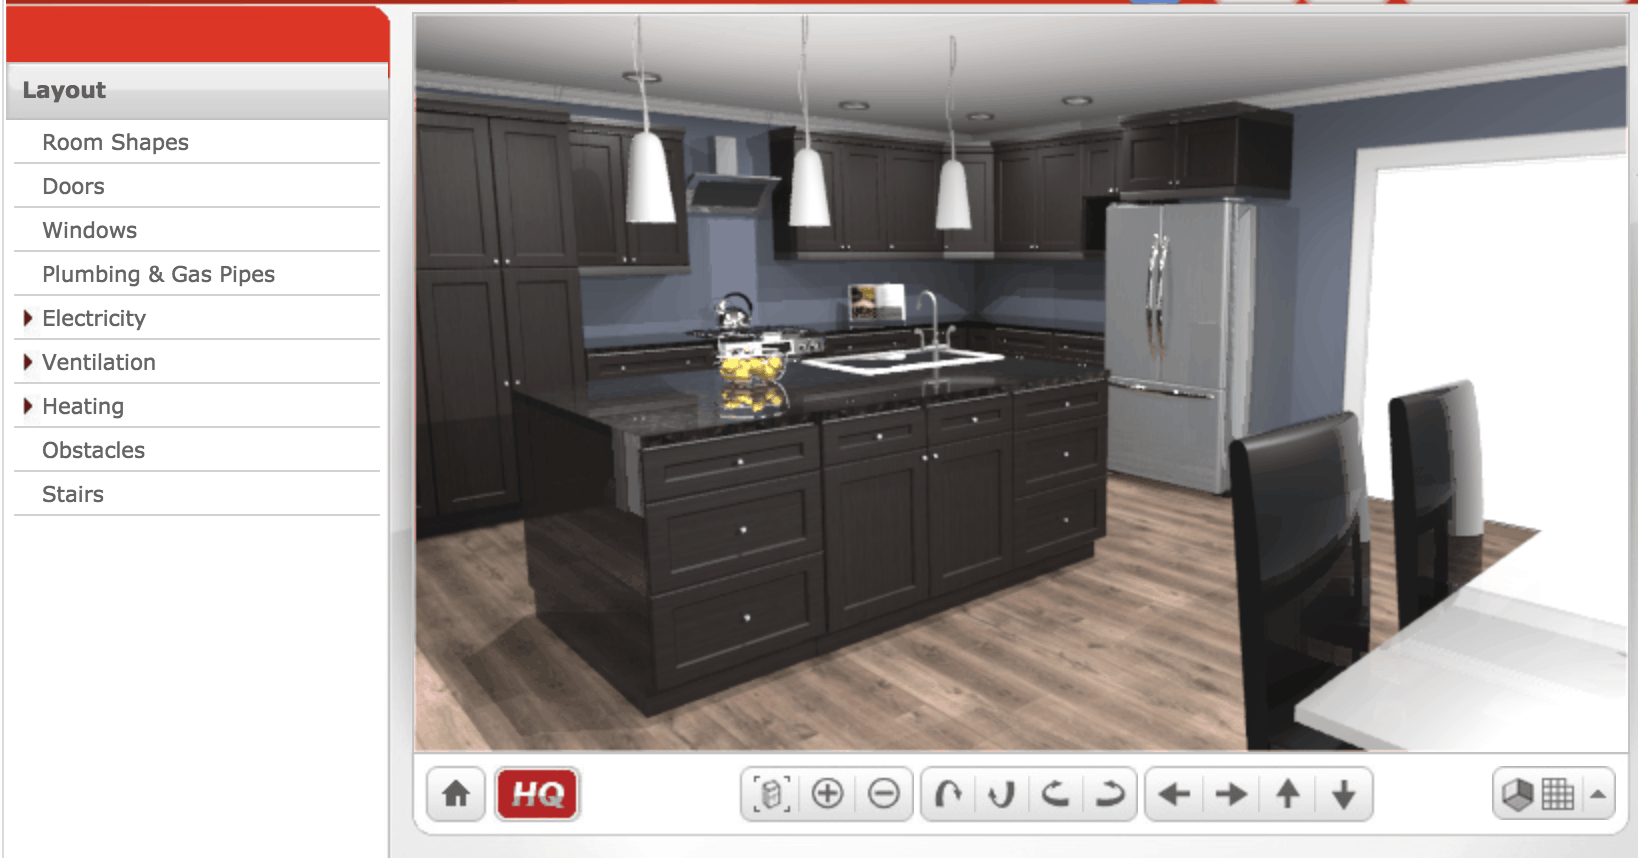 Home Hardware Kitchen Design Software (FREE)